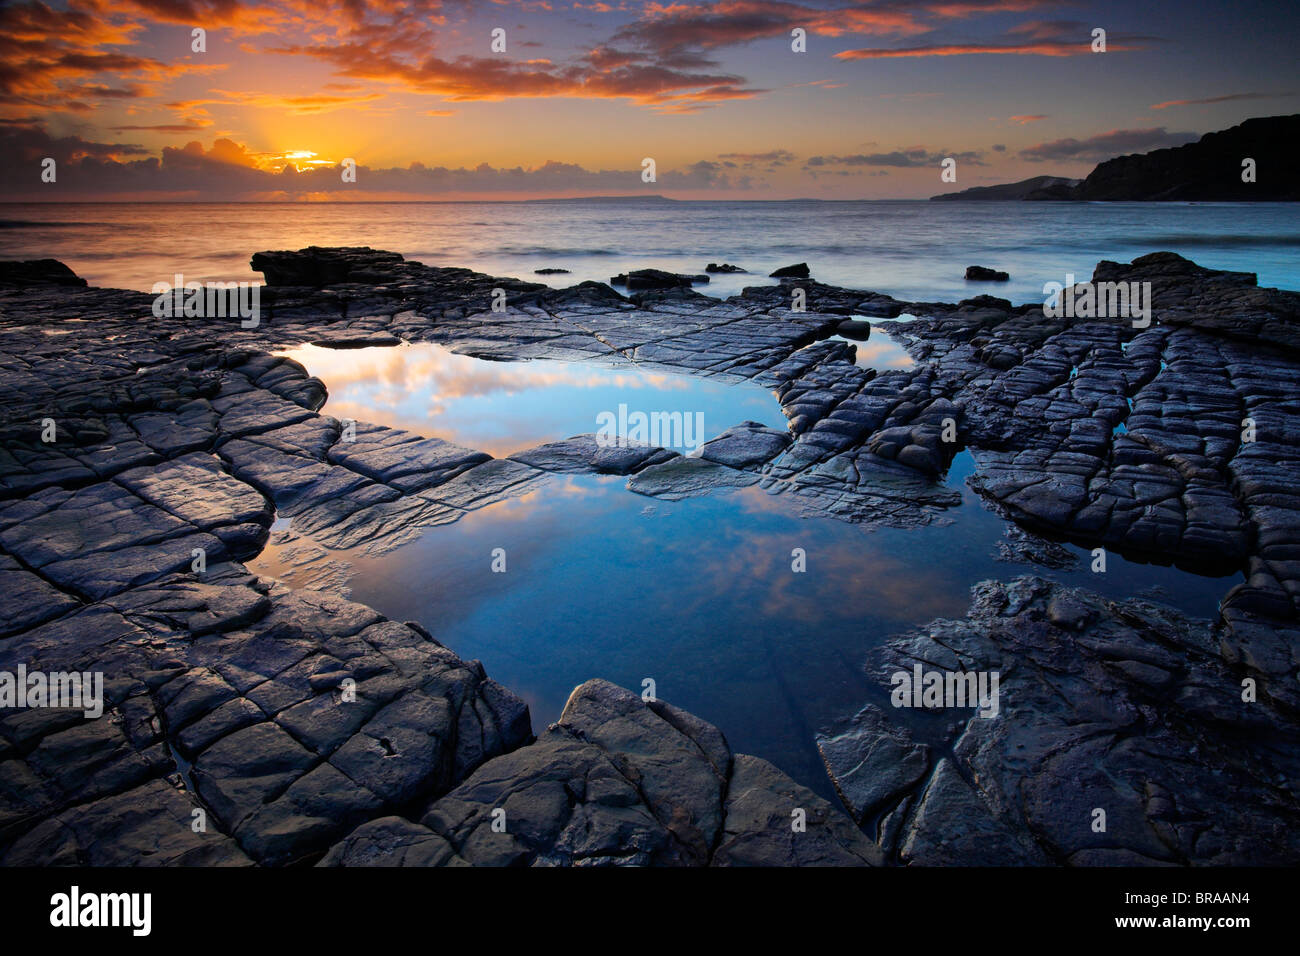 Rockpools on Broad Bench, looking towards Gad Cliff and the Isle of Portland, Dorset, England - Stock Image